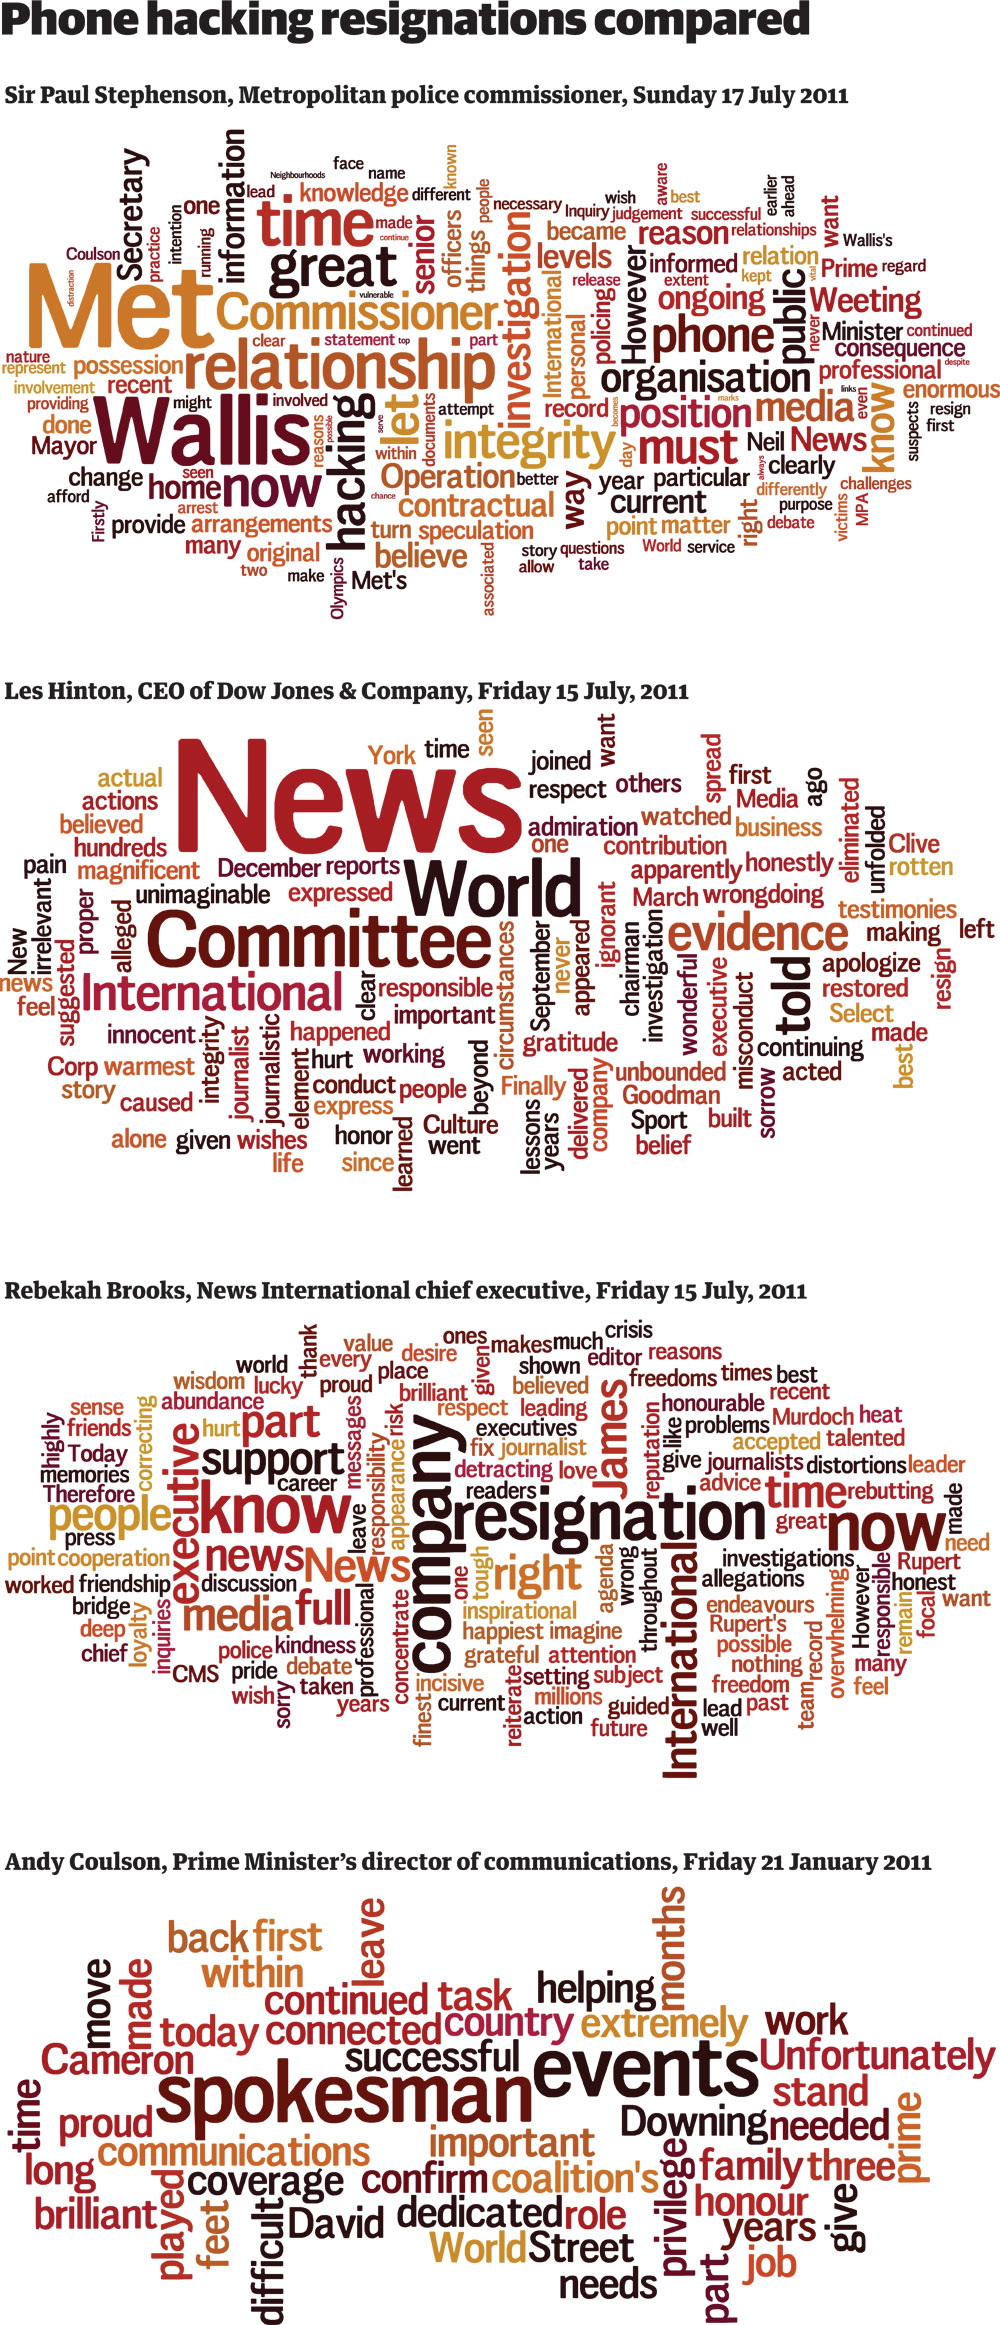 Phone hacking scandal: the full resignation speeches visualised and listed